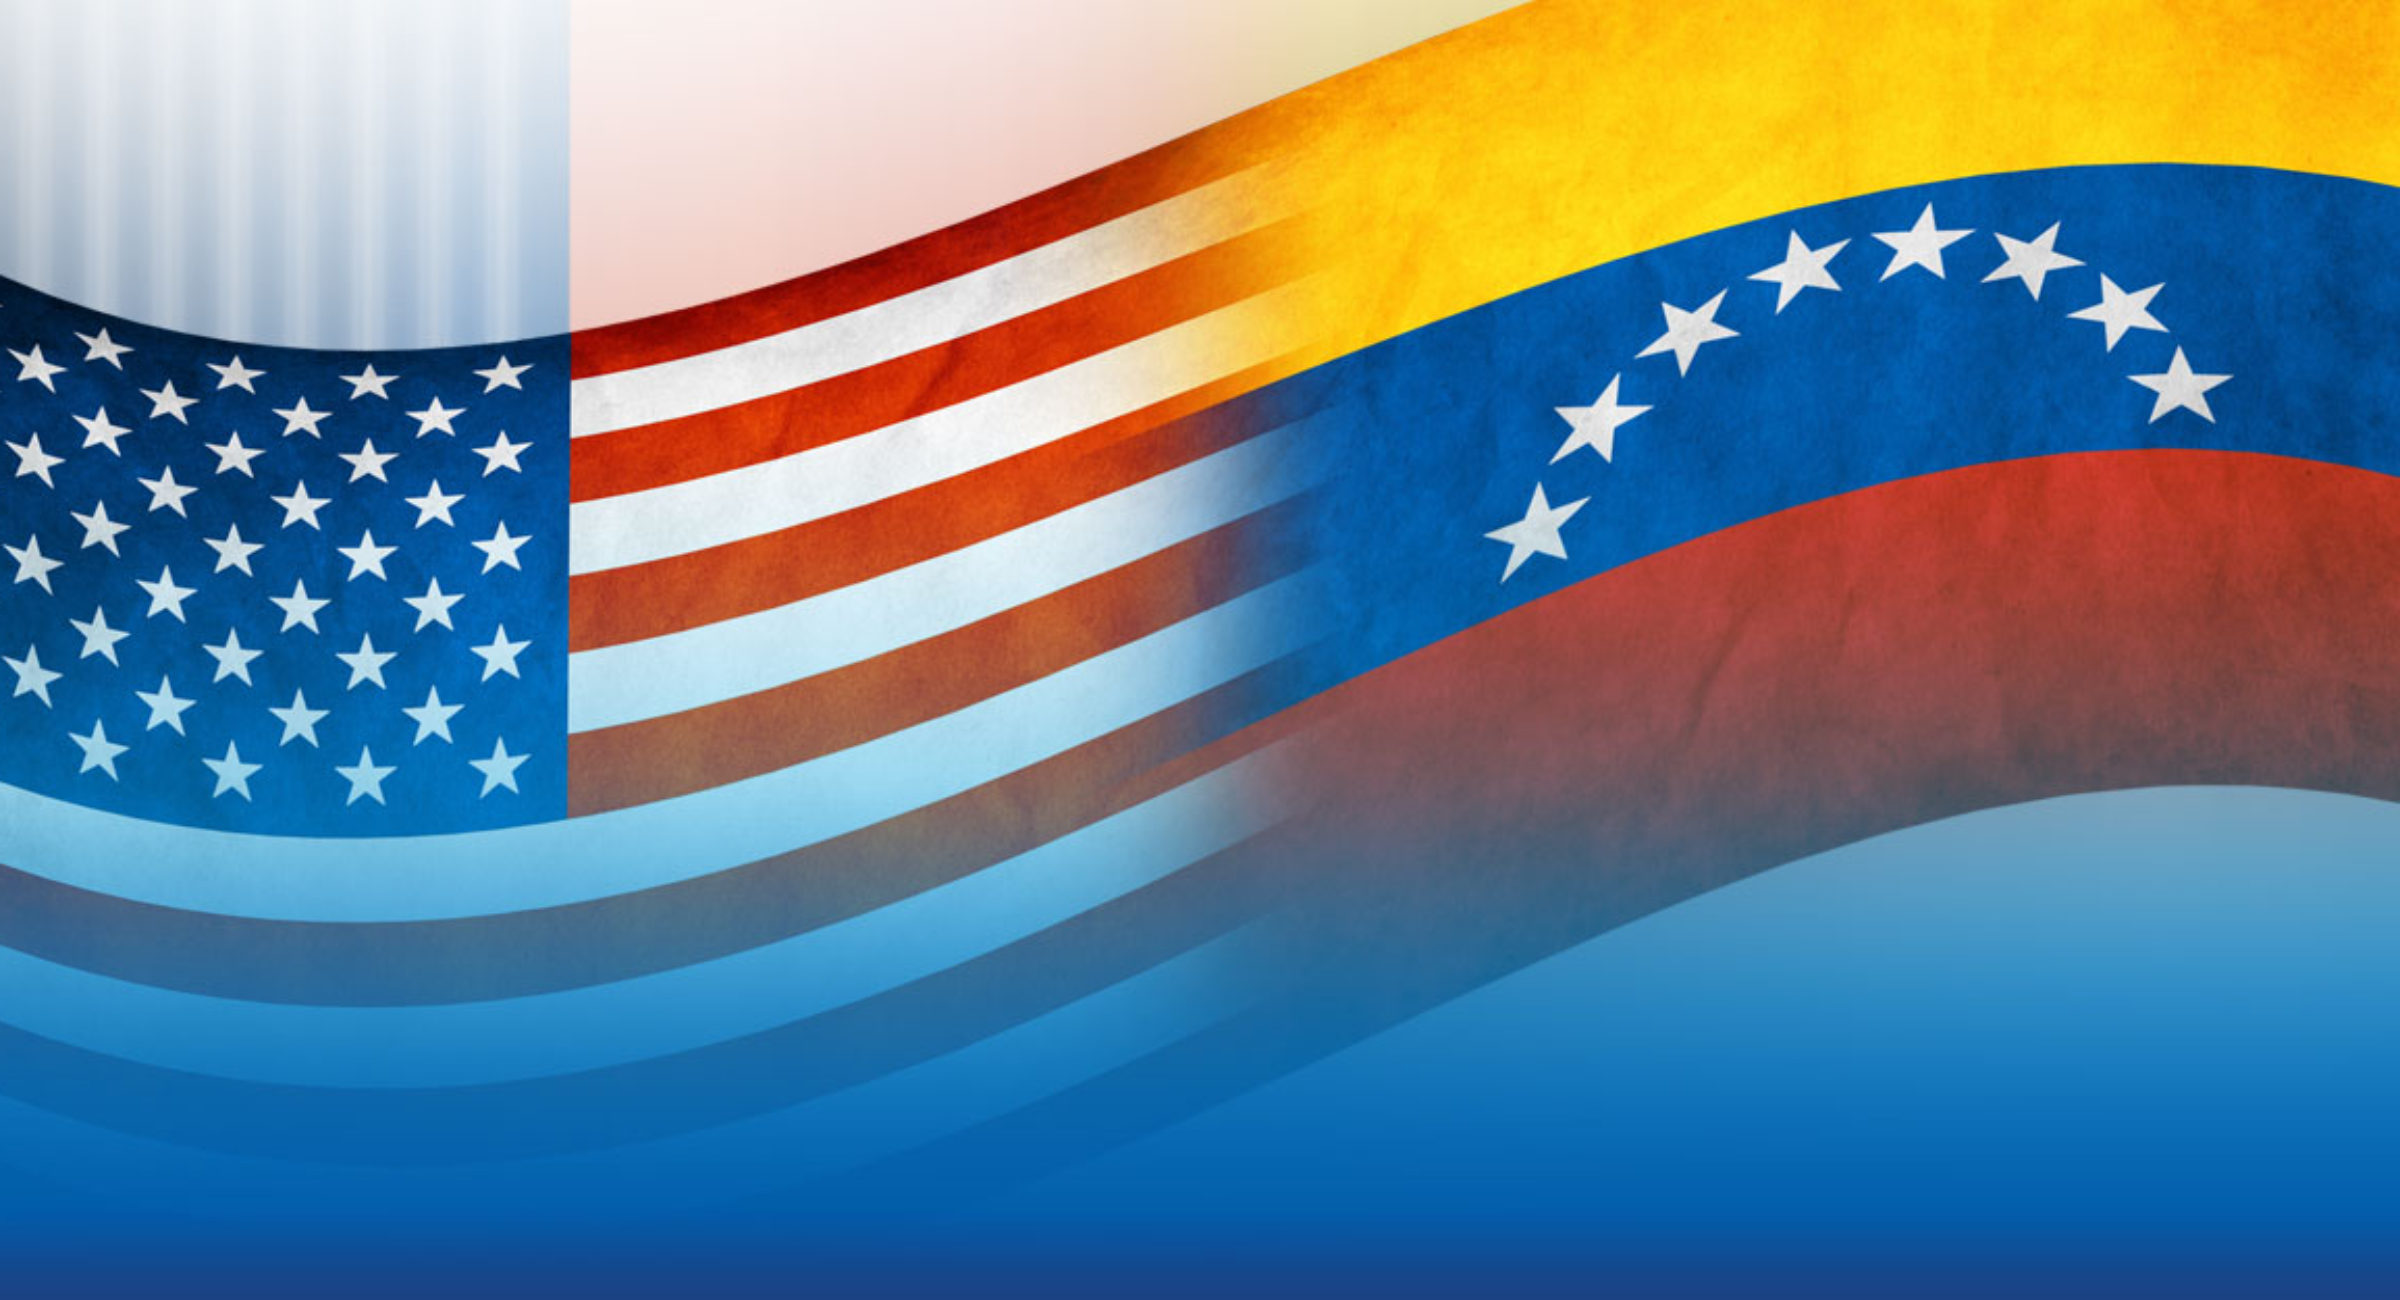 venezuela-usa-flags